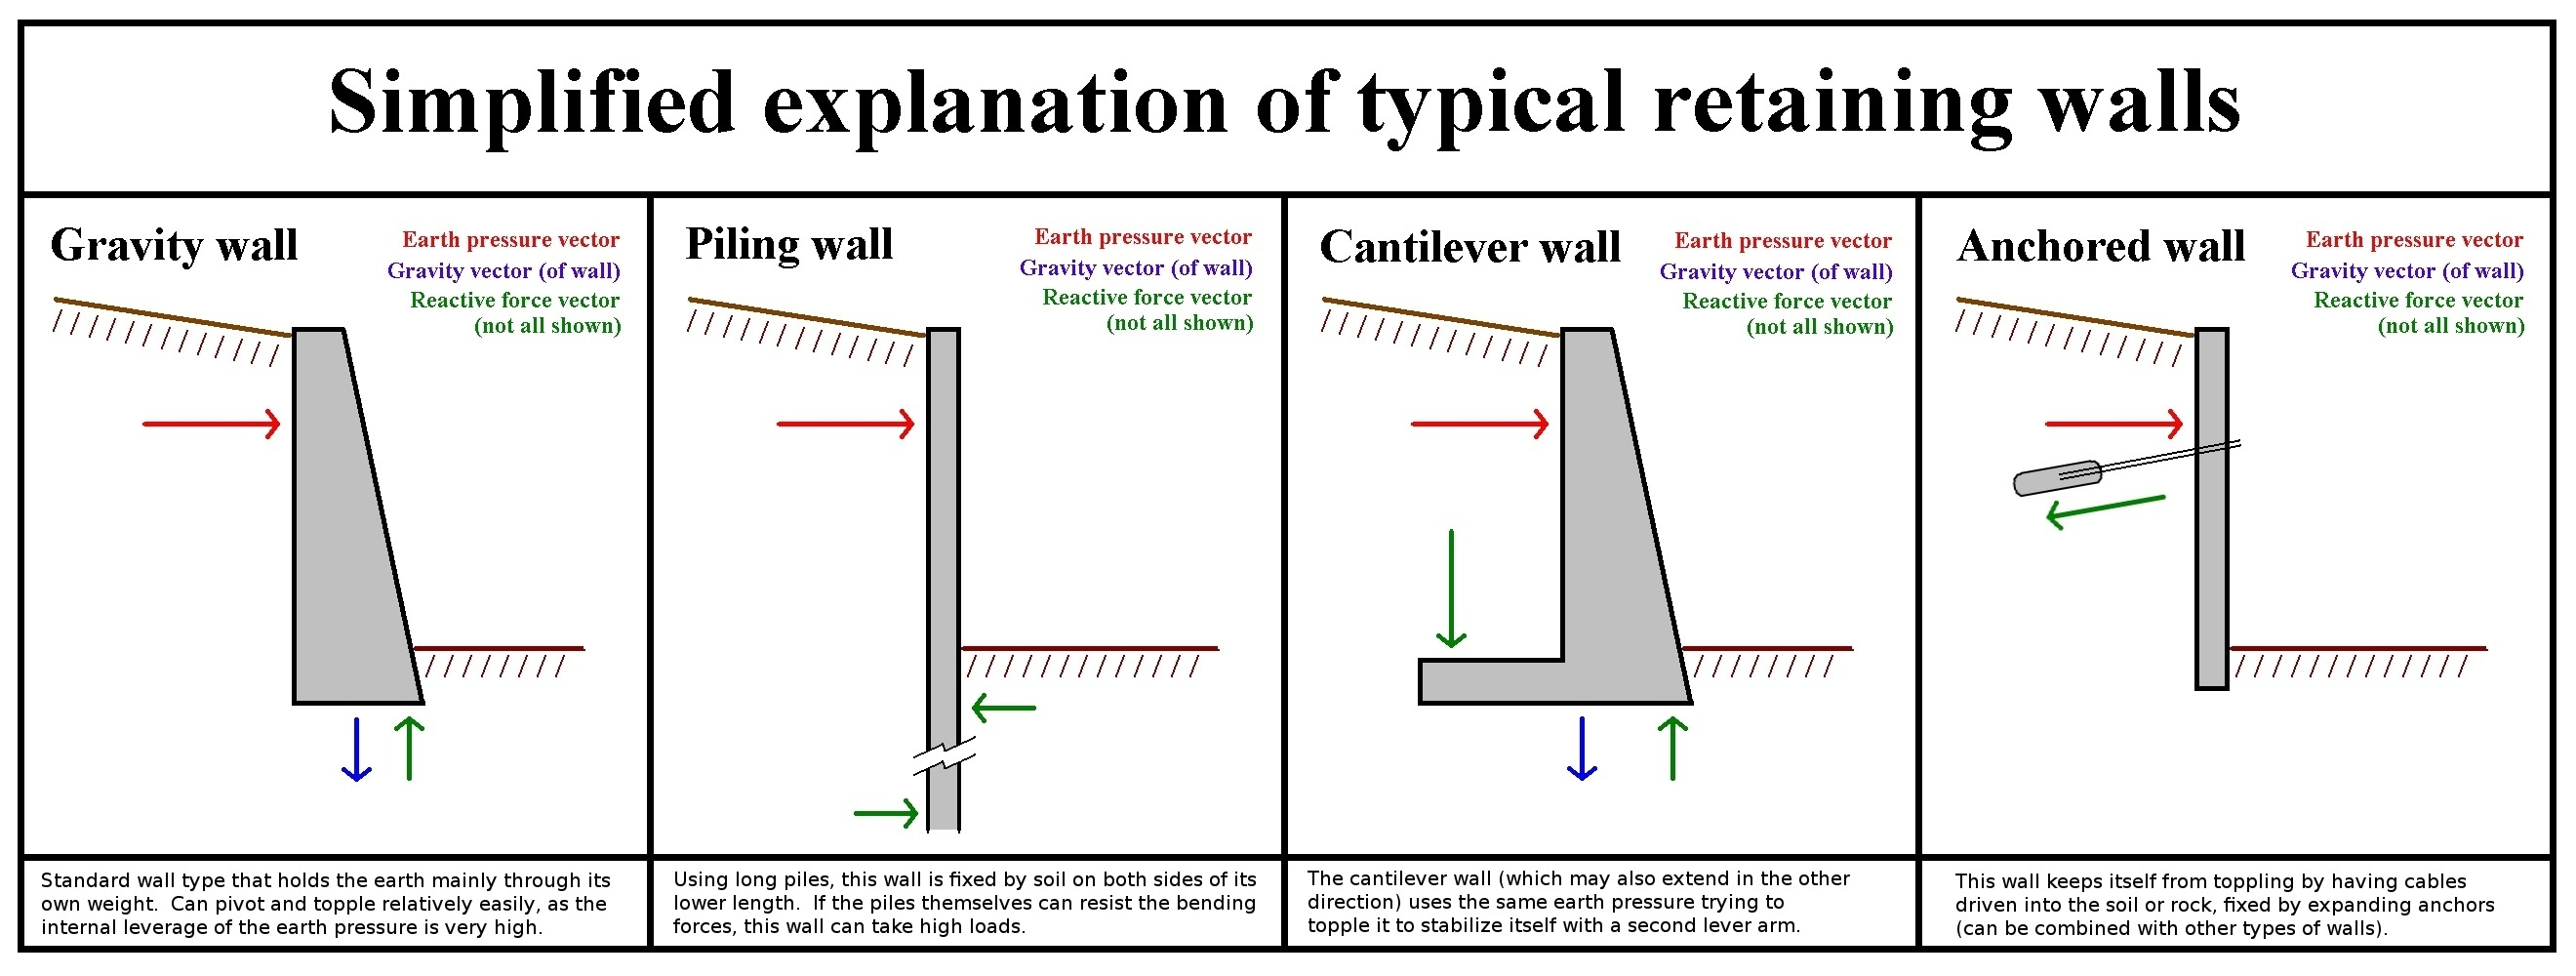 Buttress Wall Design Example : File:Retaining Wall Type Function.jpg - Wikimedia Commons